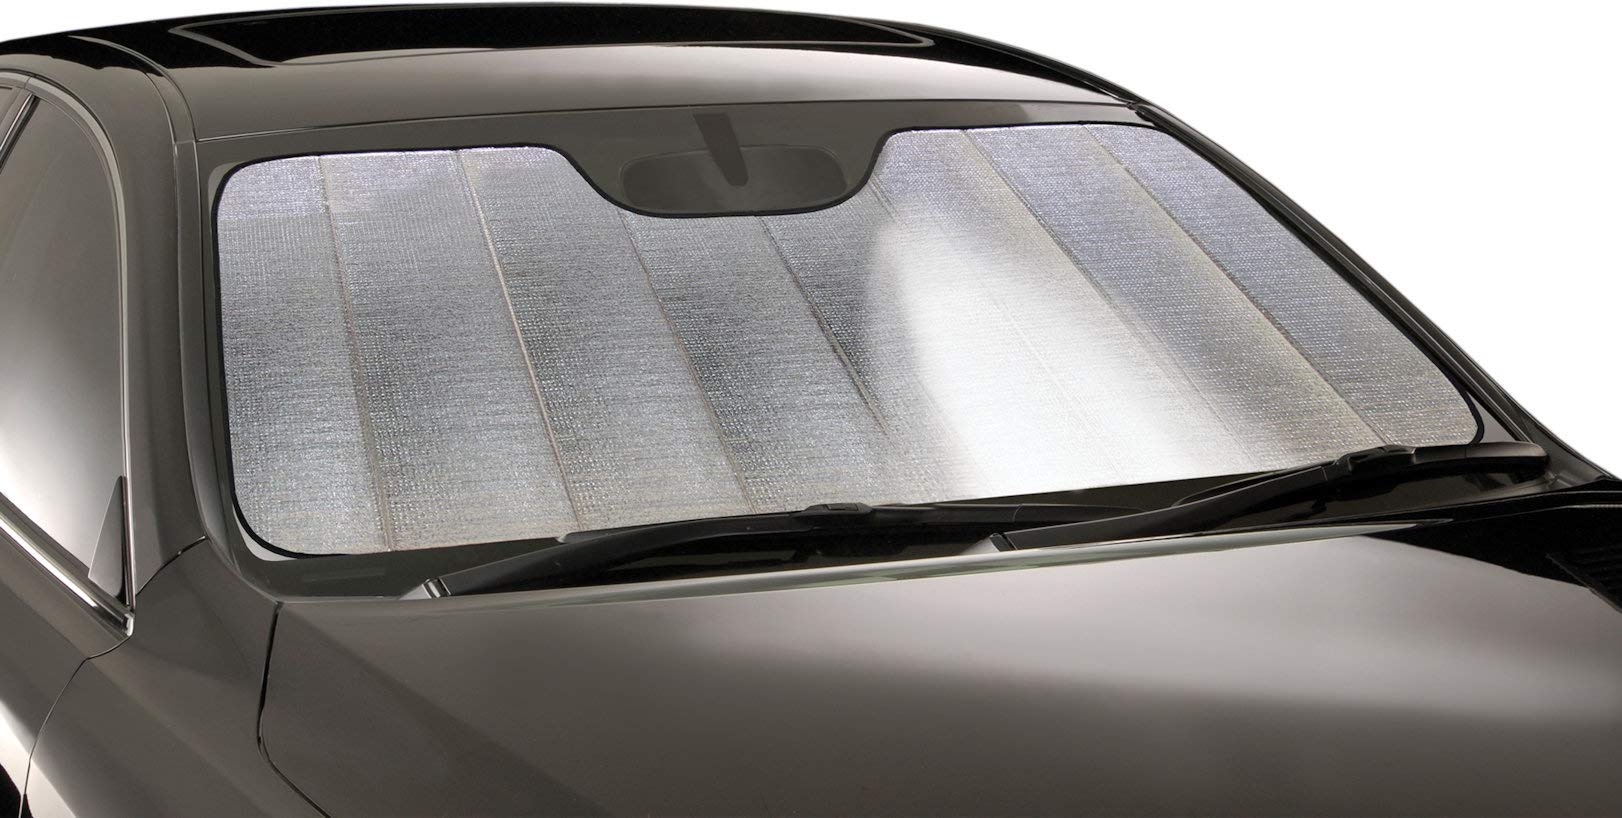 Intro-Tech BM-39-R Silver Ultimate Reflector Custom Fit Folding Windshield Sunshade for Select BMW 7 Series LWB Models